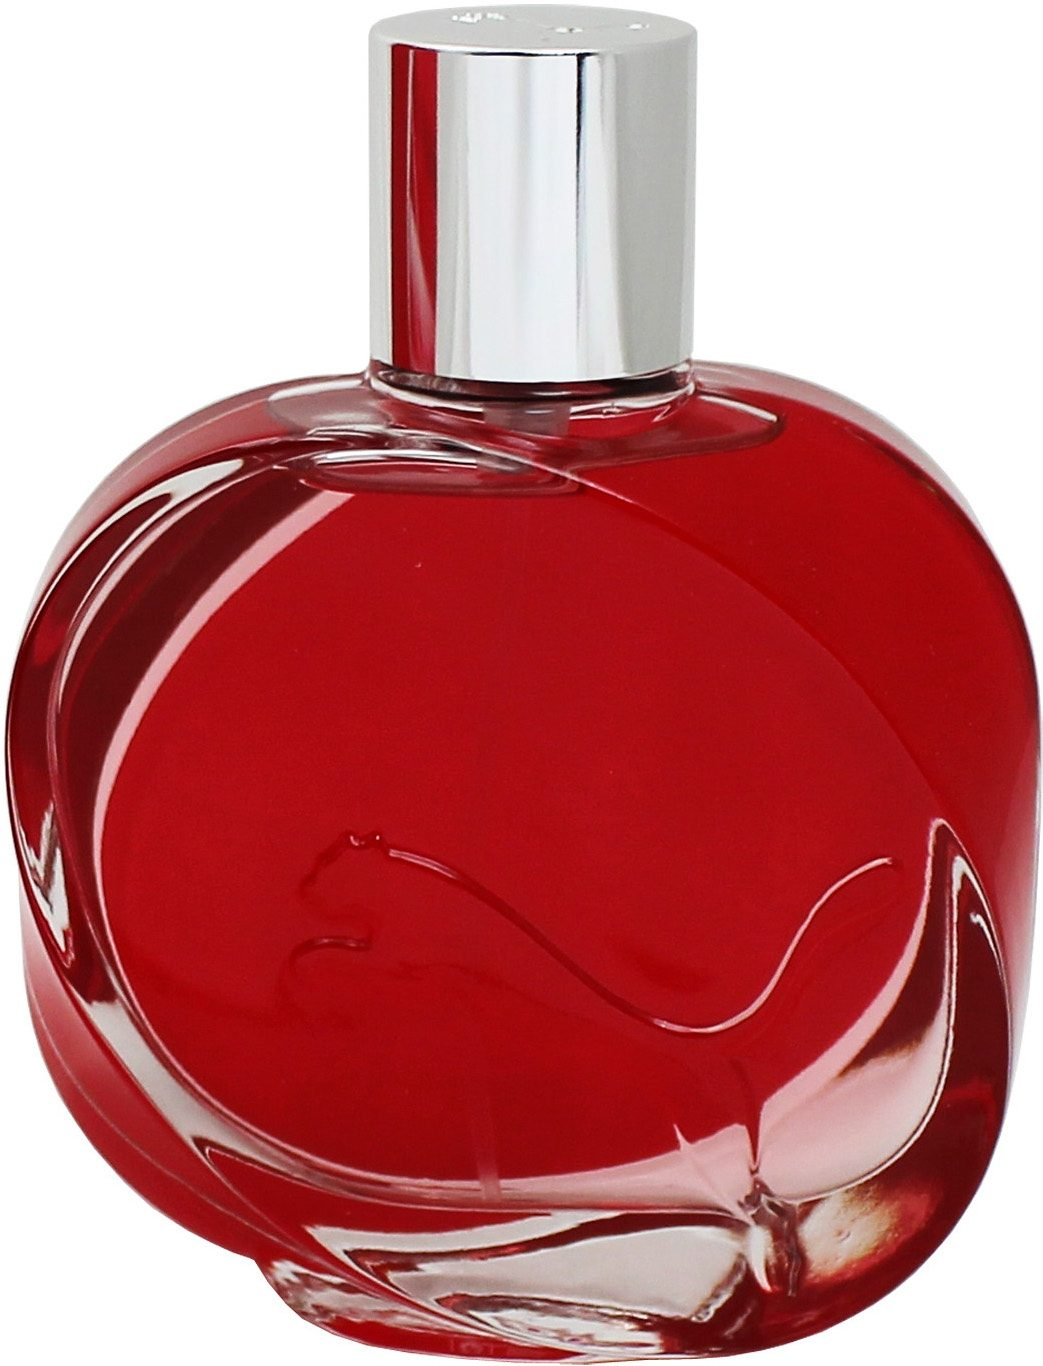 PUMA, »Urban Motion Woman«, Eau de Toilette